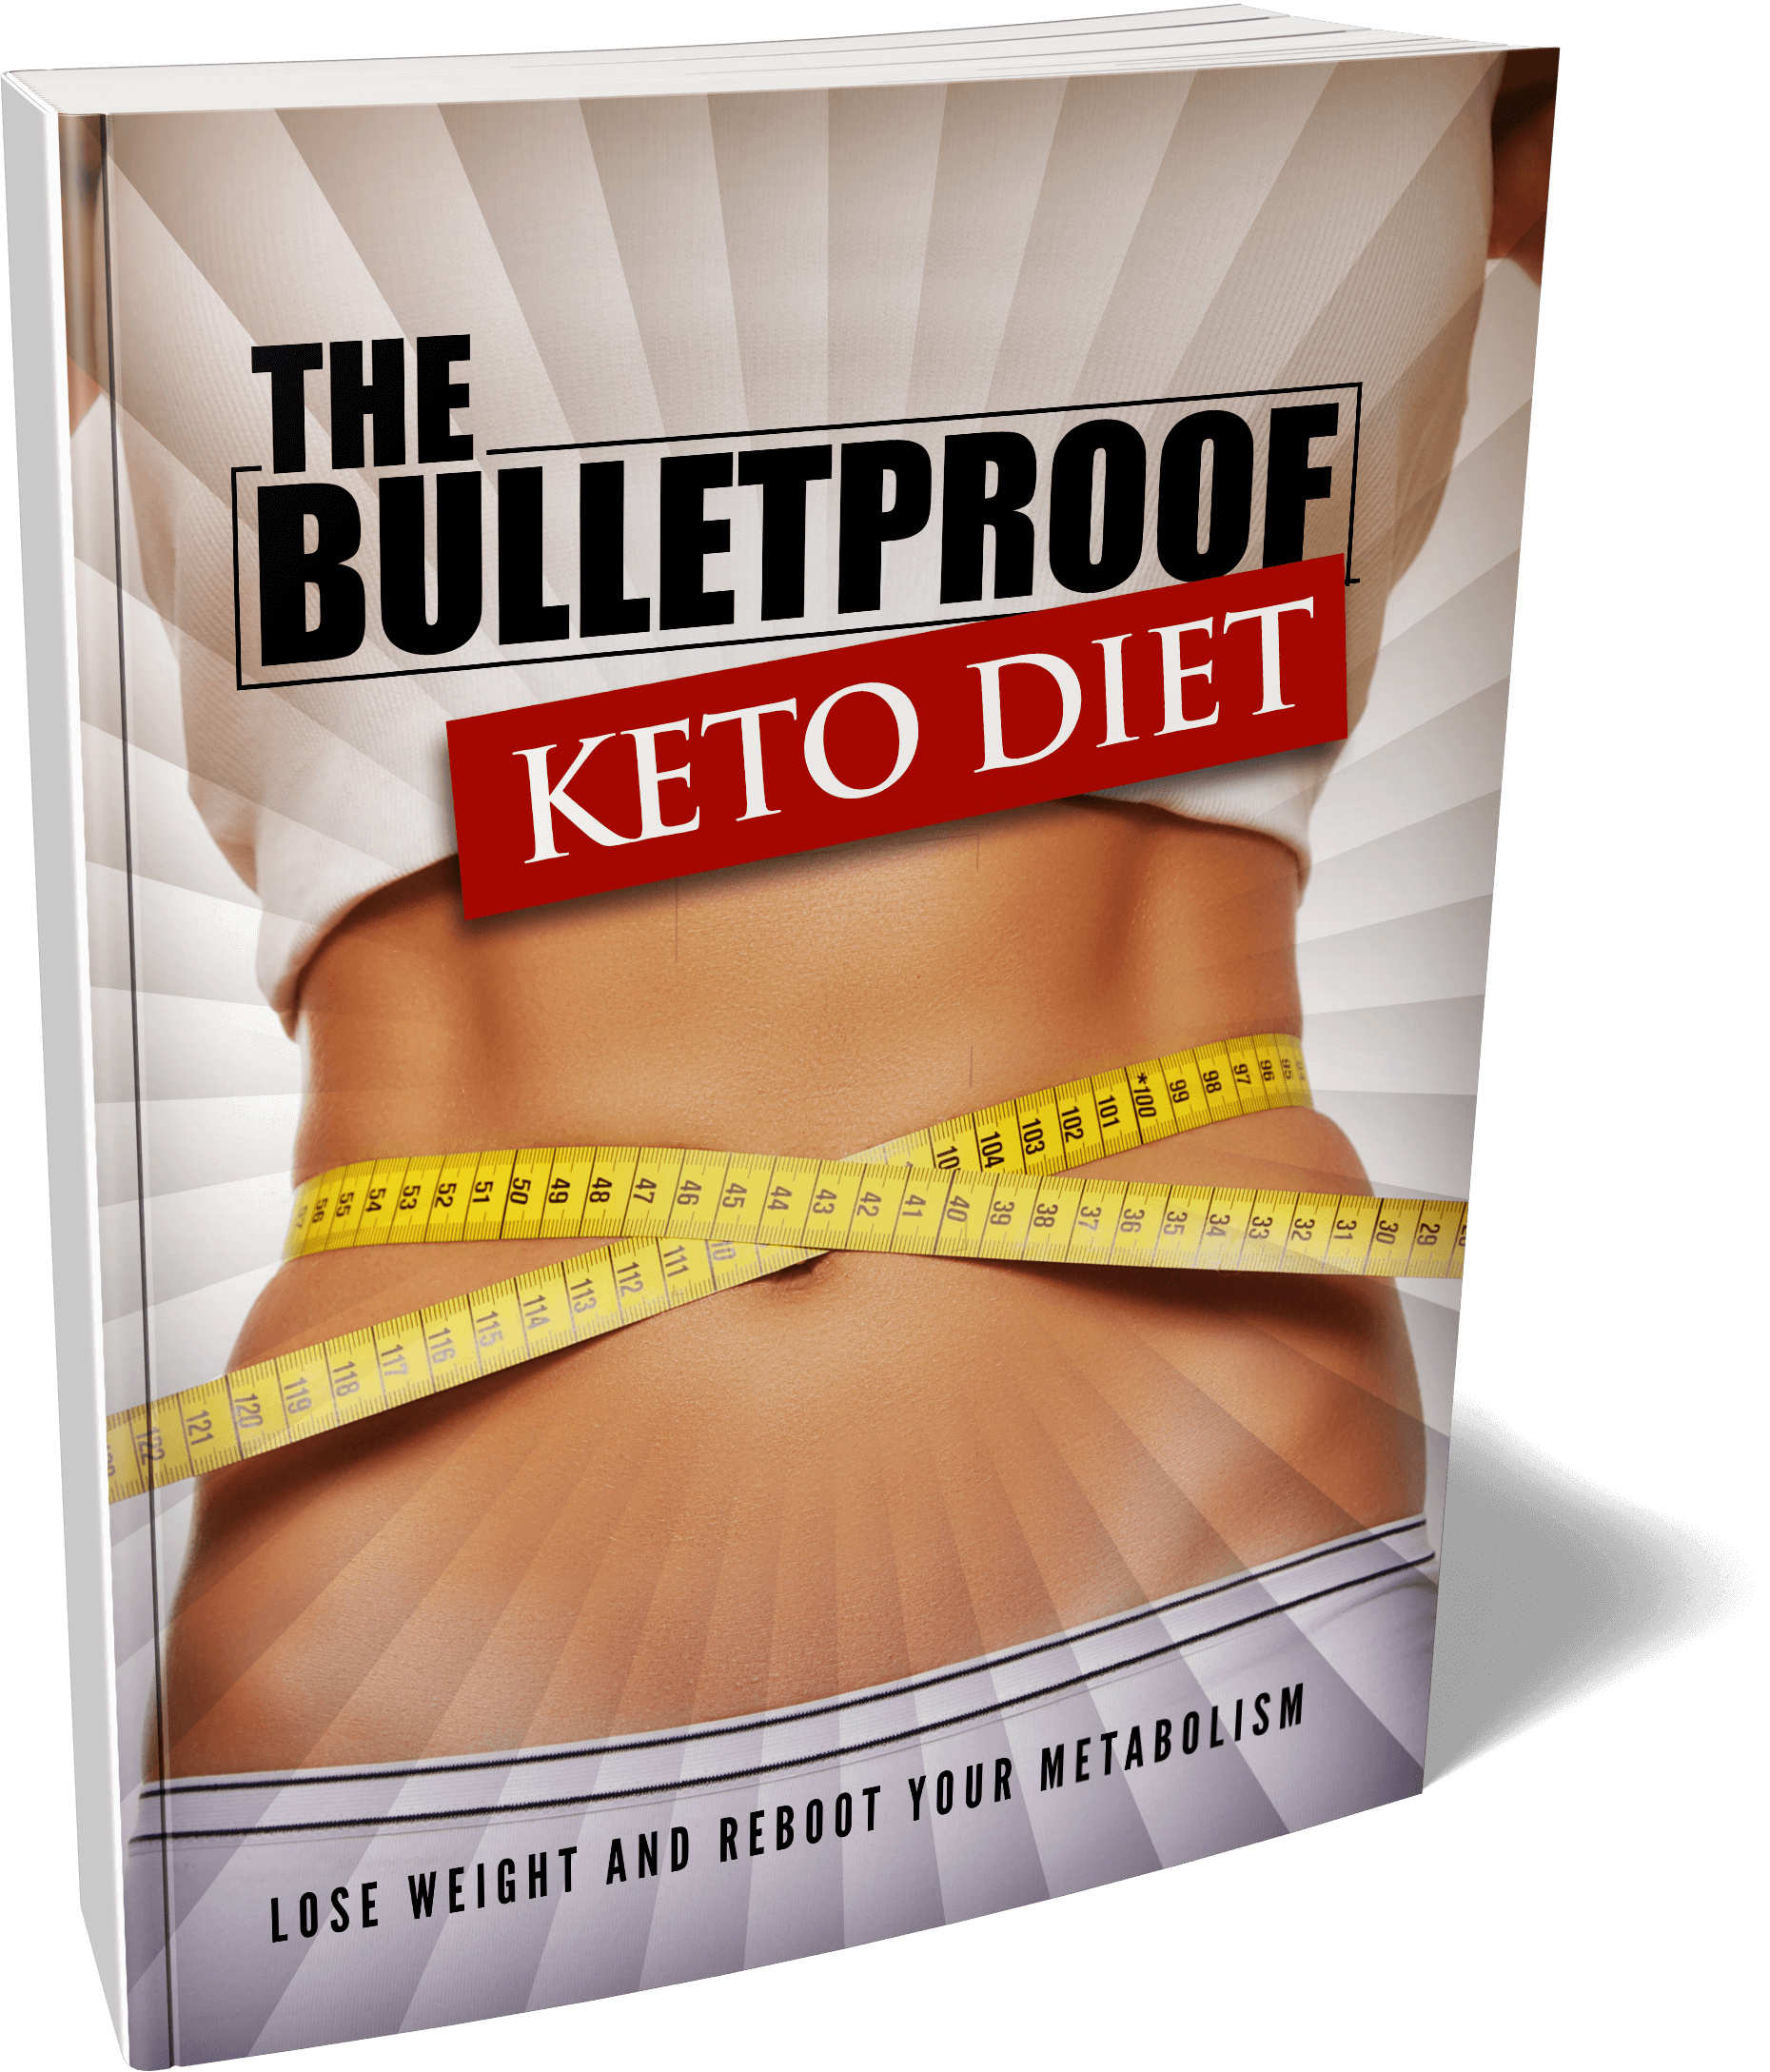 The bulletproof keto diet cookbook